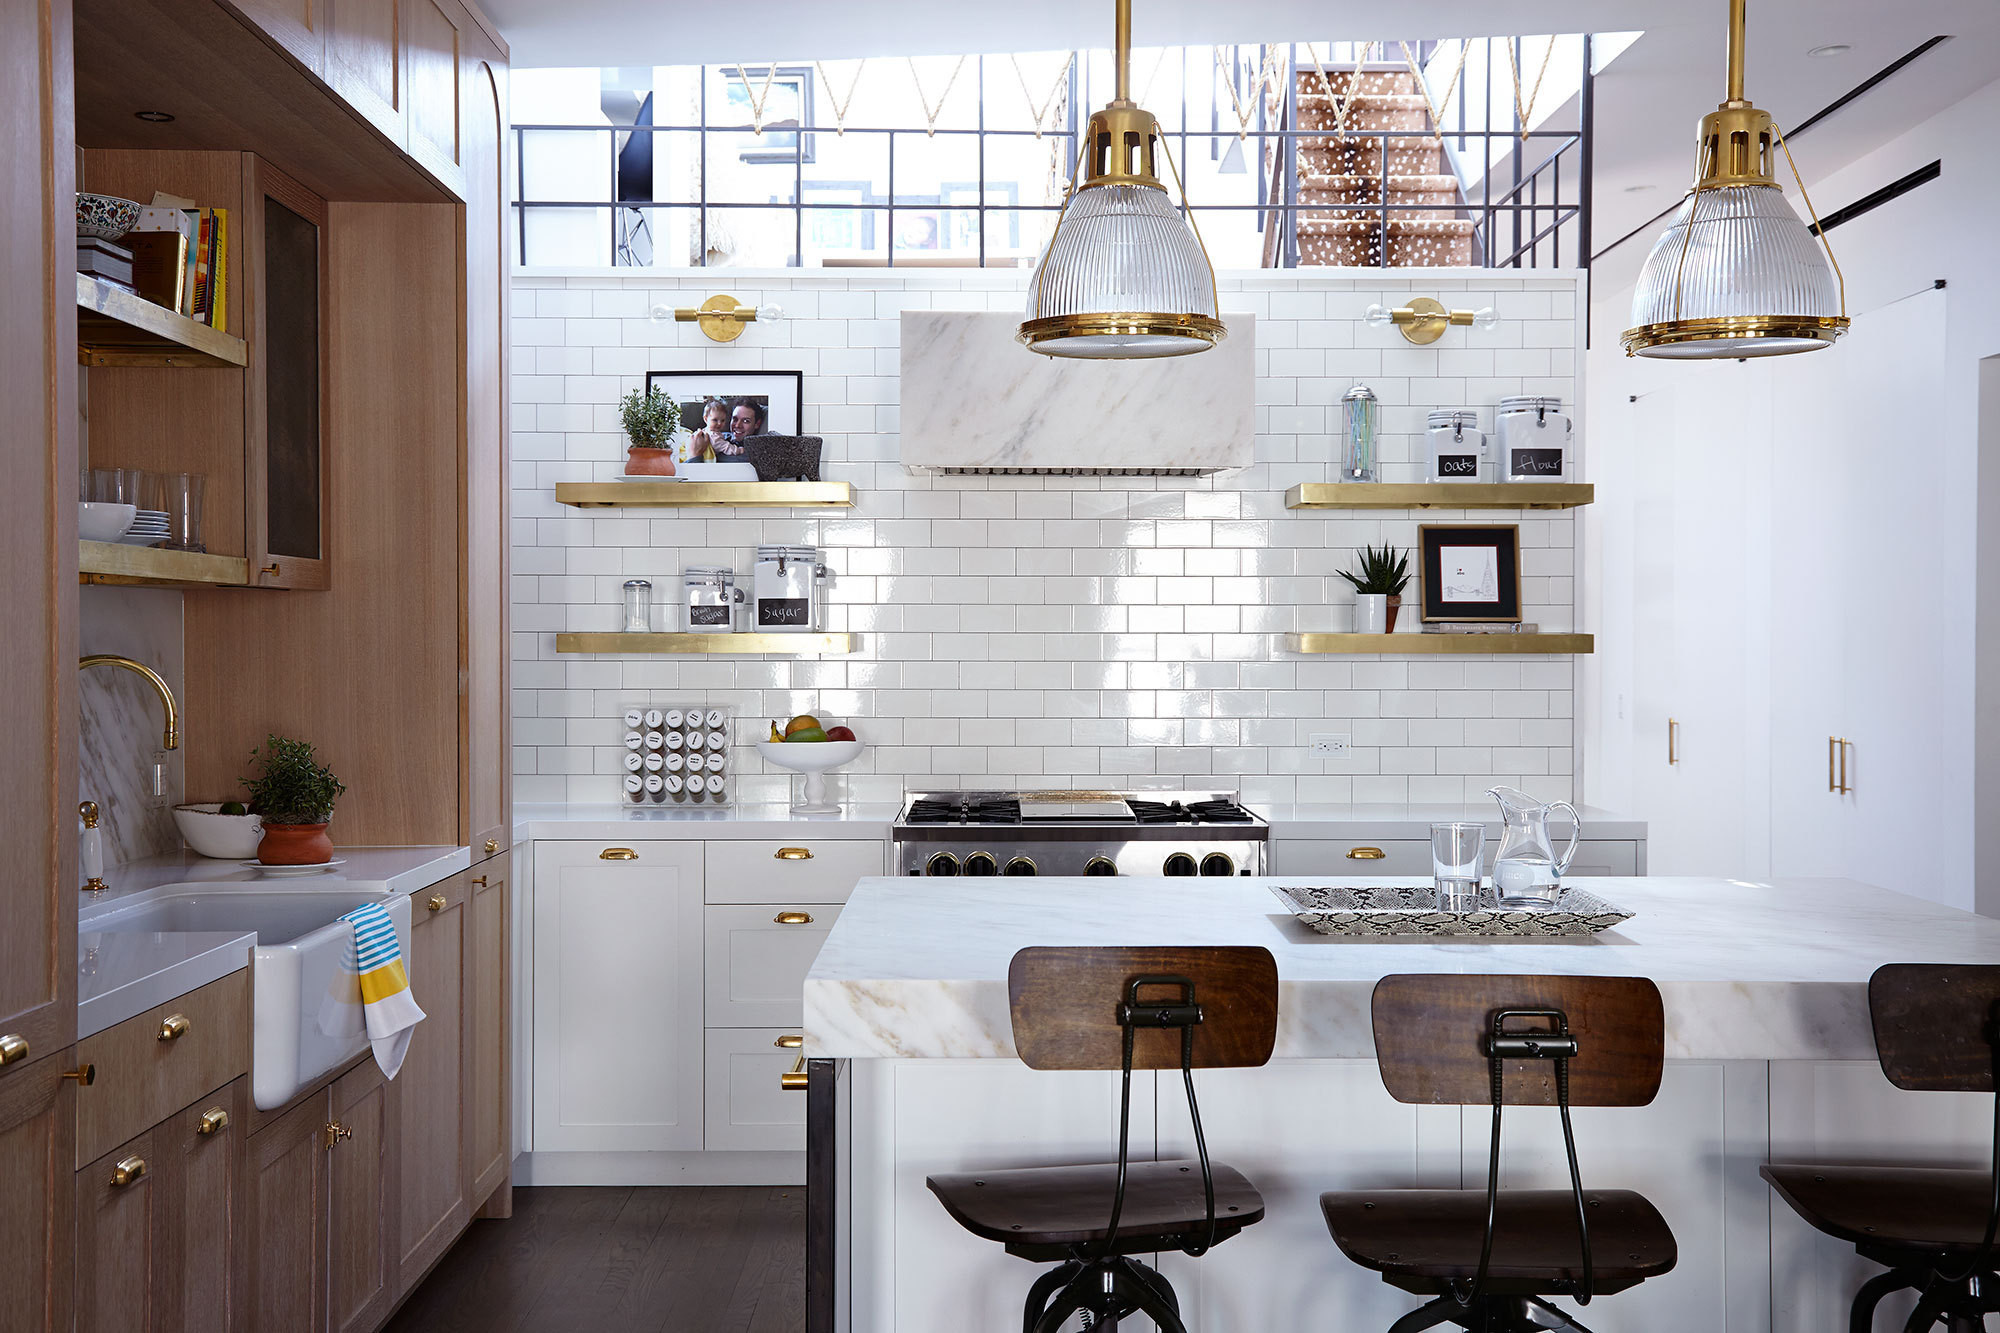 surprising Kitchen Walls Pictures Part - 3: The sunken kitchen of a Tribeca home by Jenny Vorhoff.